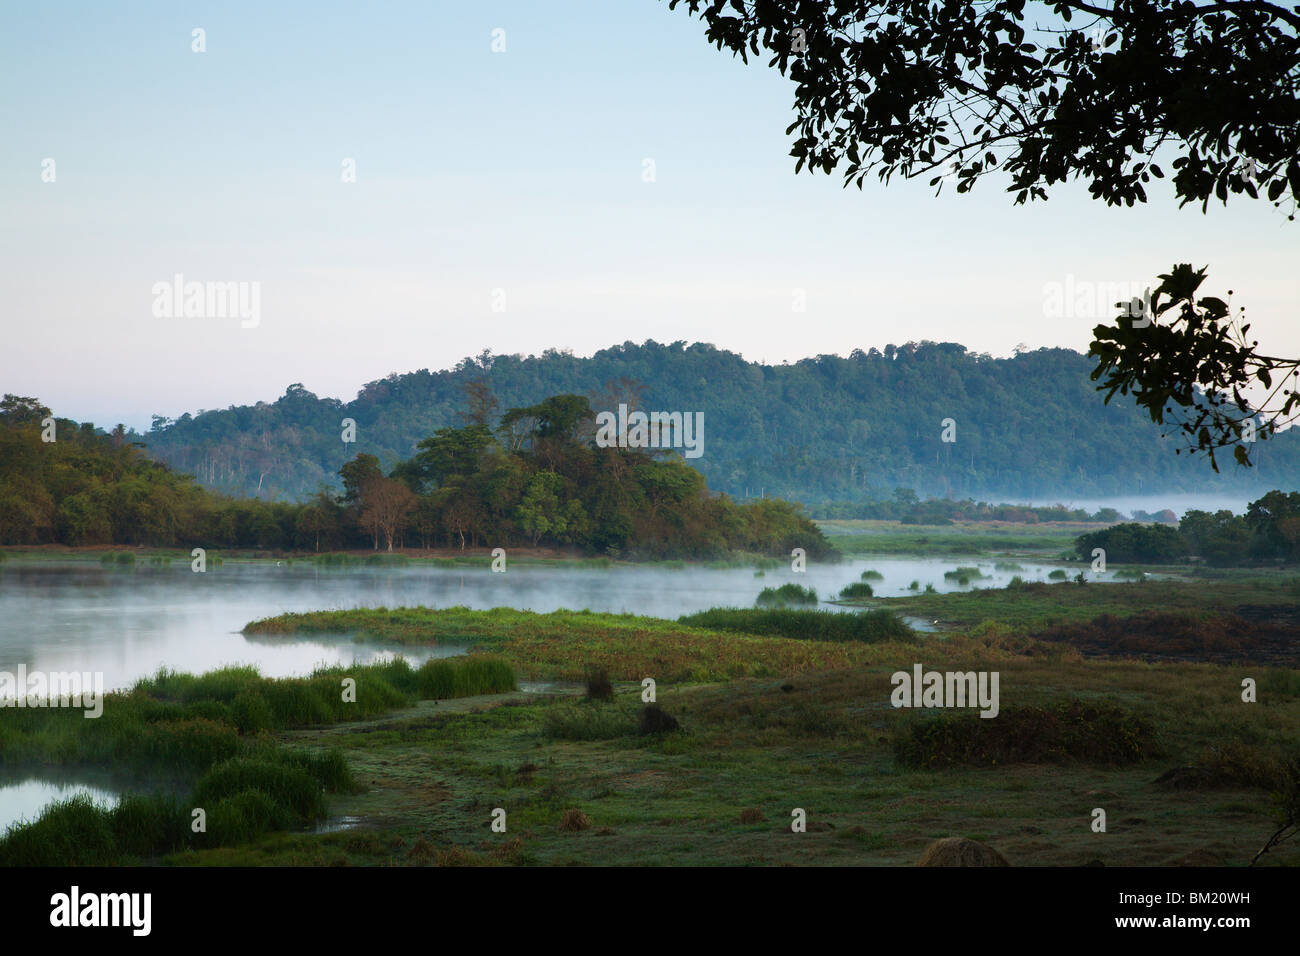 Early morning view of Crocodile Swamp deep inside Cat Tien National Park. - Stock Image